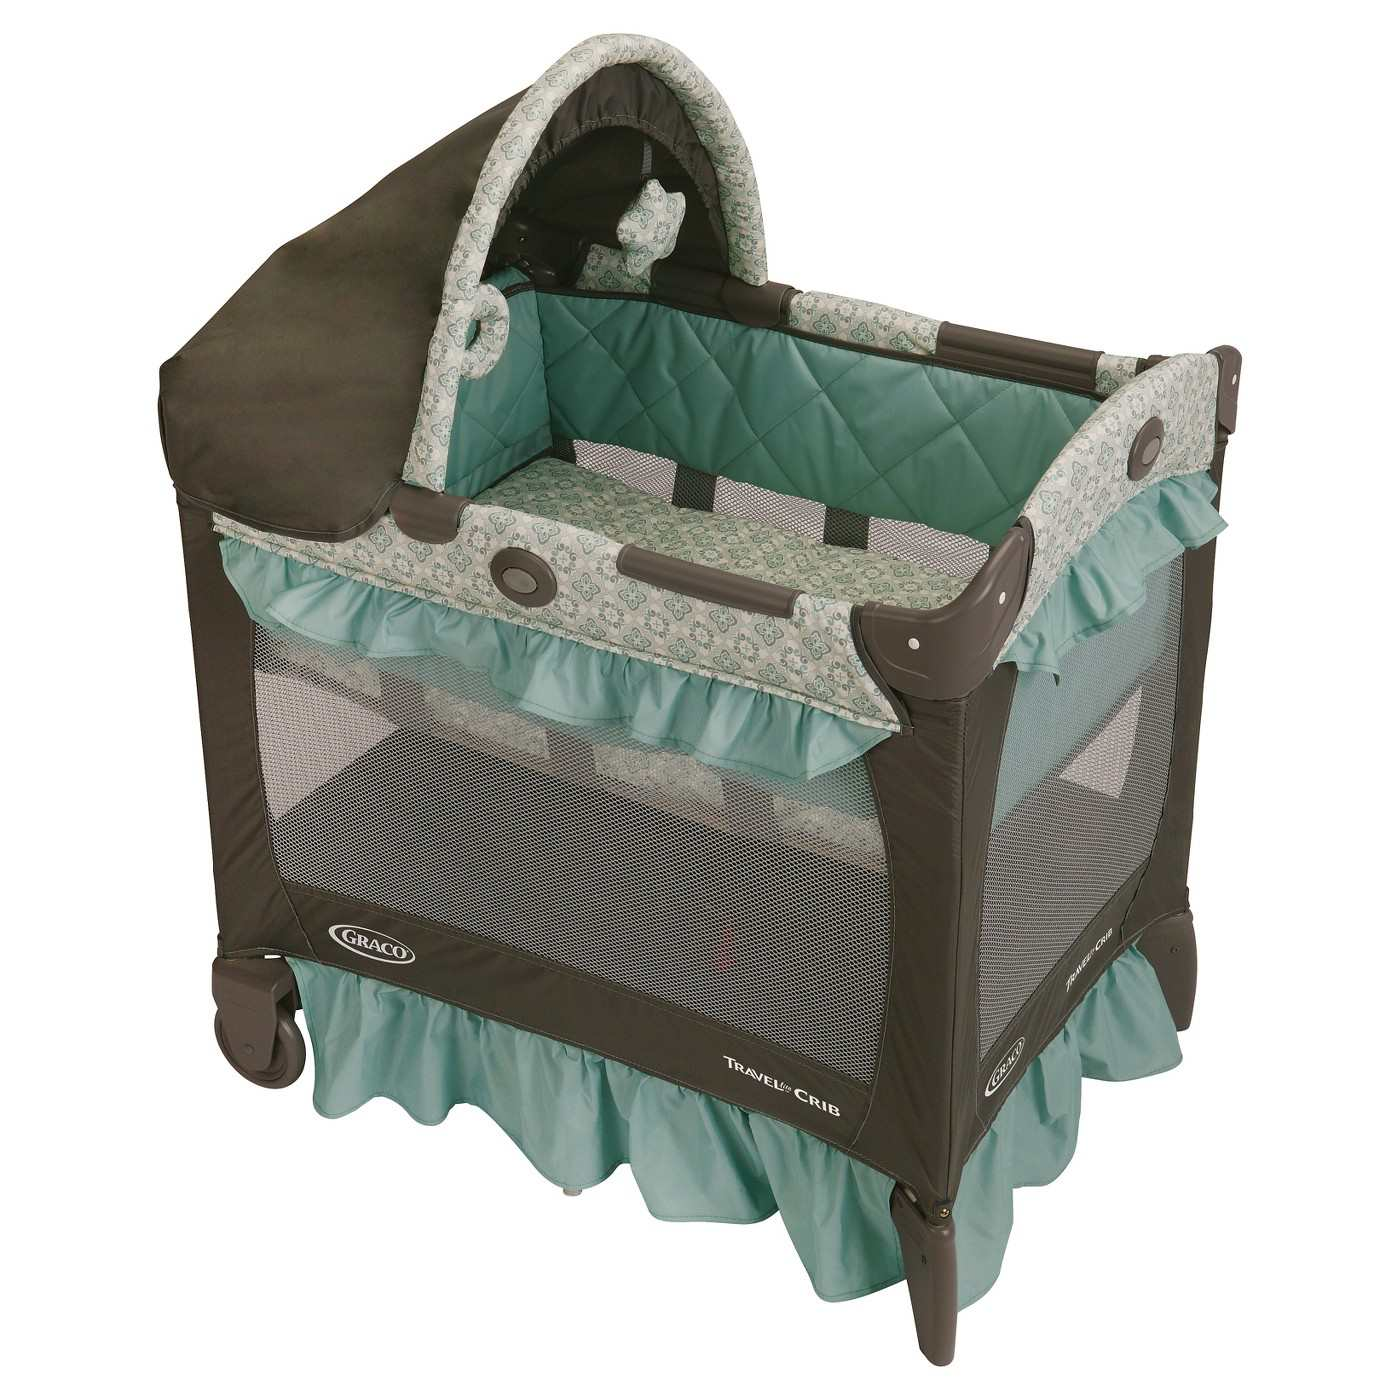 bars skylar wonderful make wool size teddy blanket area million toys sheets rug of mini without cribs nursery stuff a wall with bear full drawer baby spectacular dollar ideas feather delta crib art changing best hanging choosing tables cot